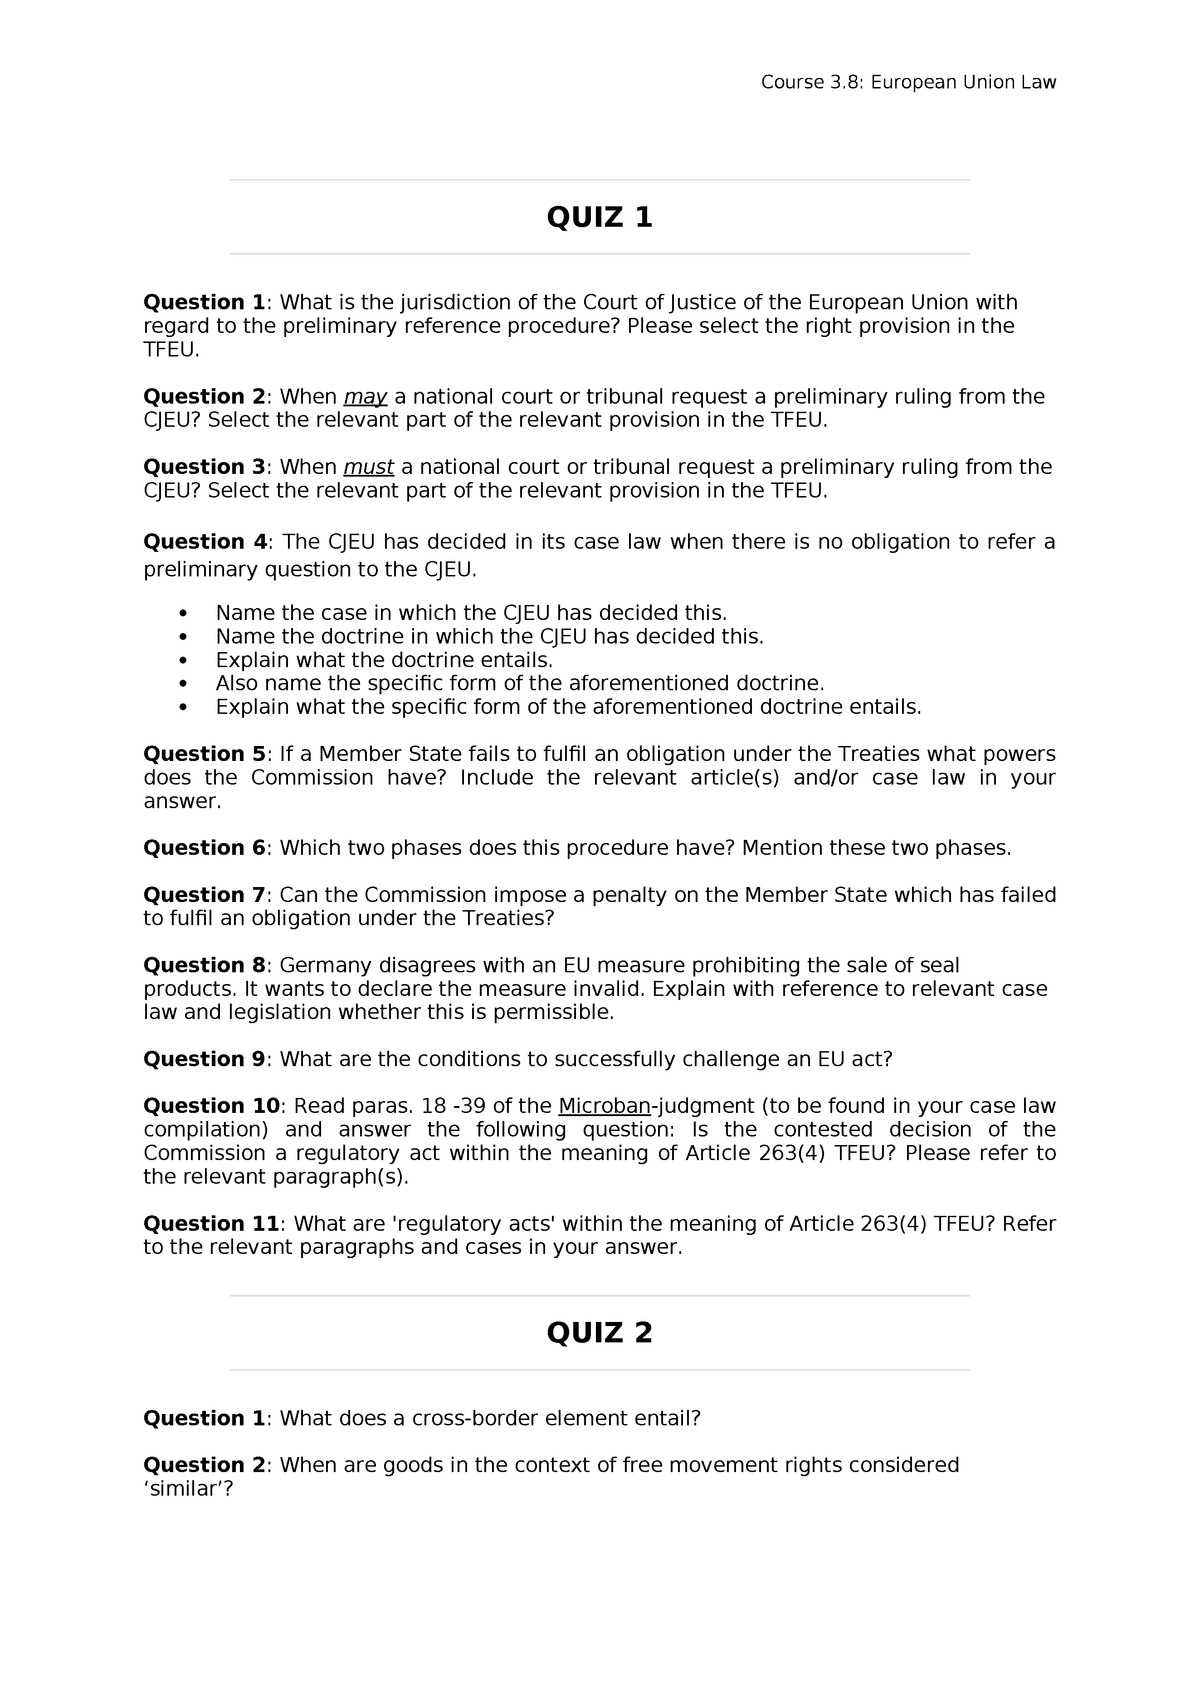 Quiz questions (1-4) - RR202: European Union Law